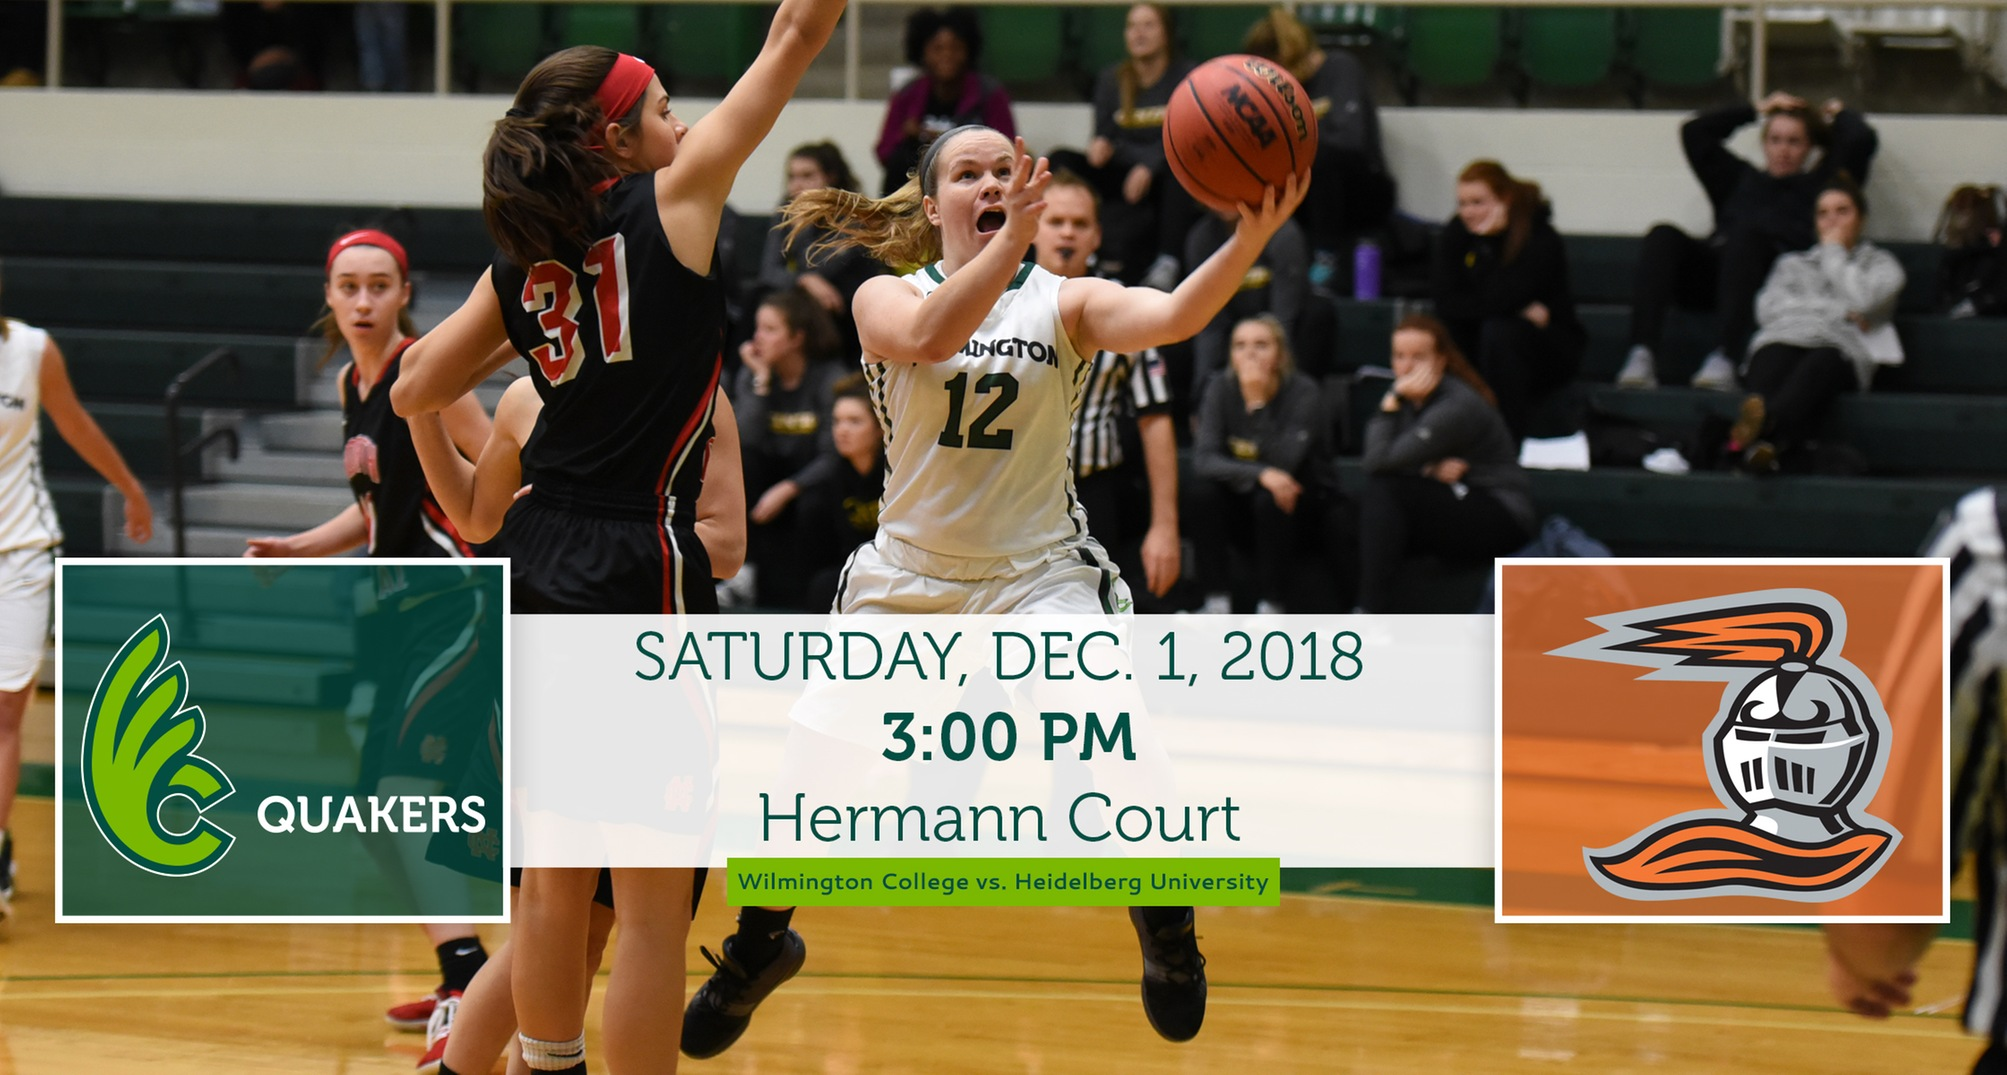 Women's Basketball Opens OAC Play With Heidelberg at Home Saturday